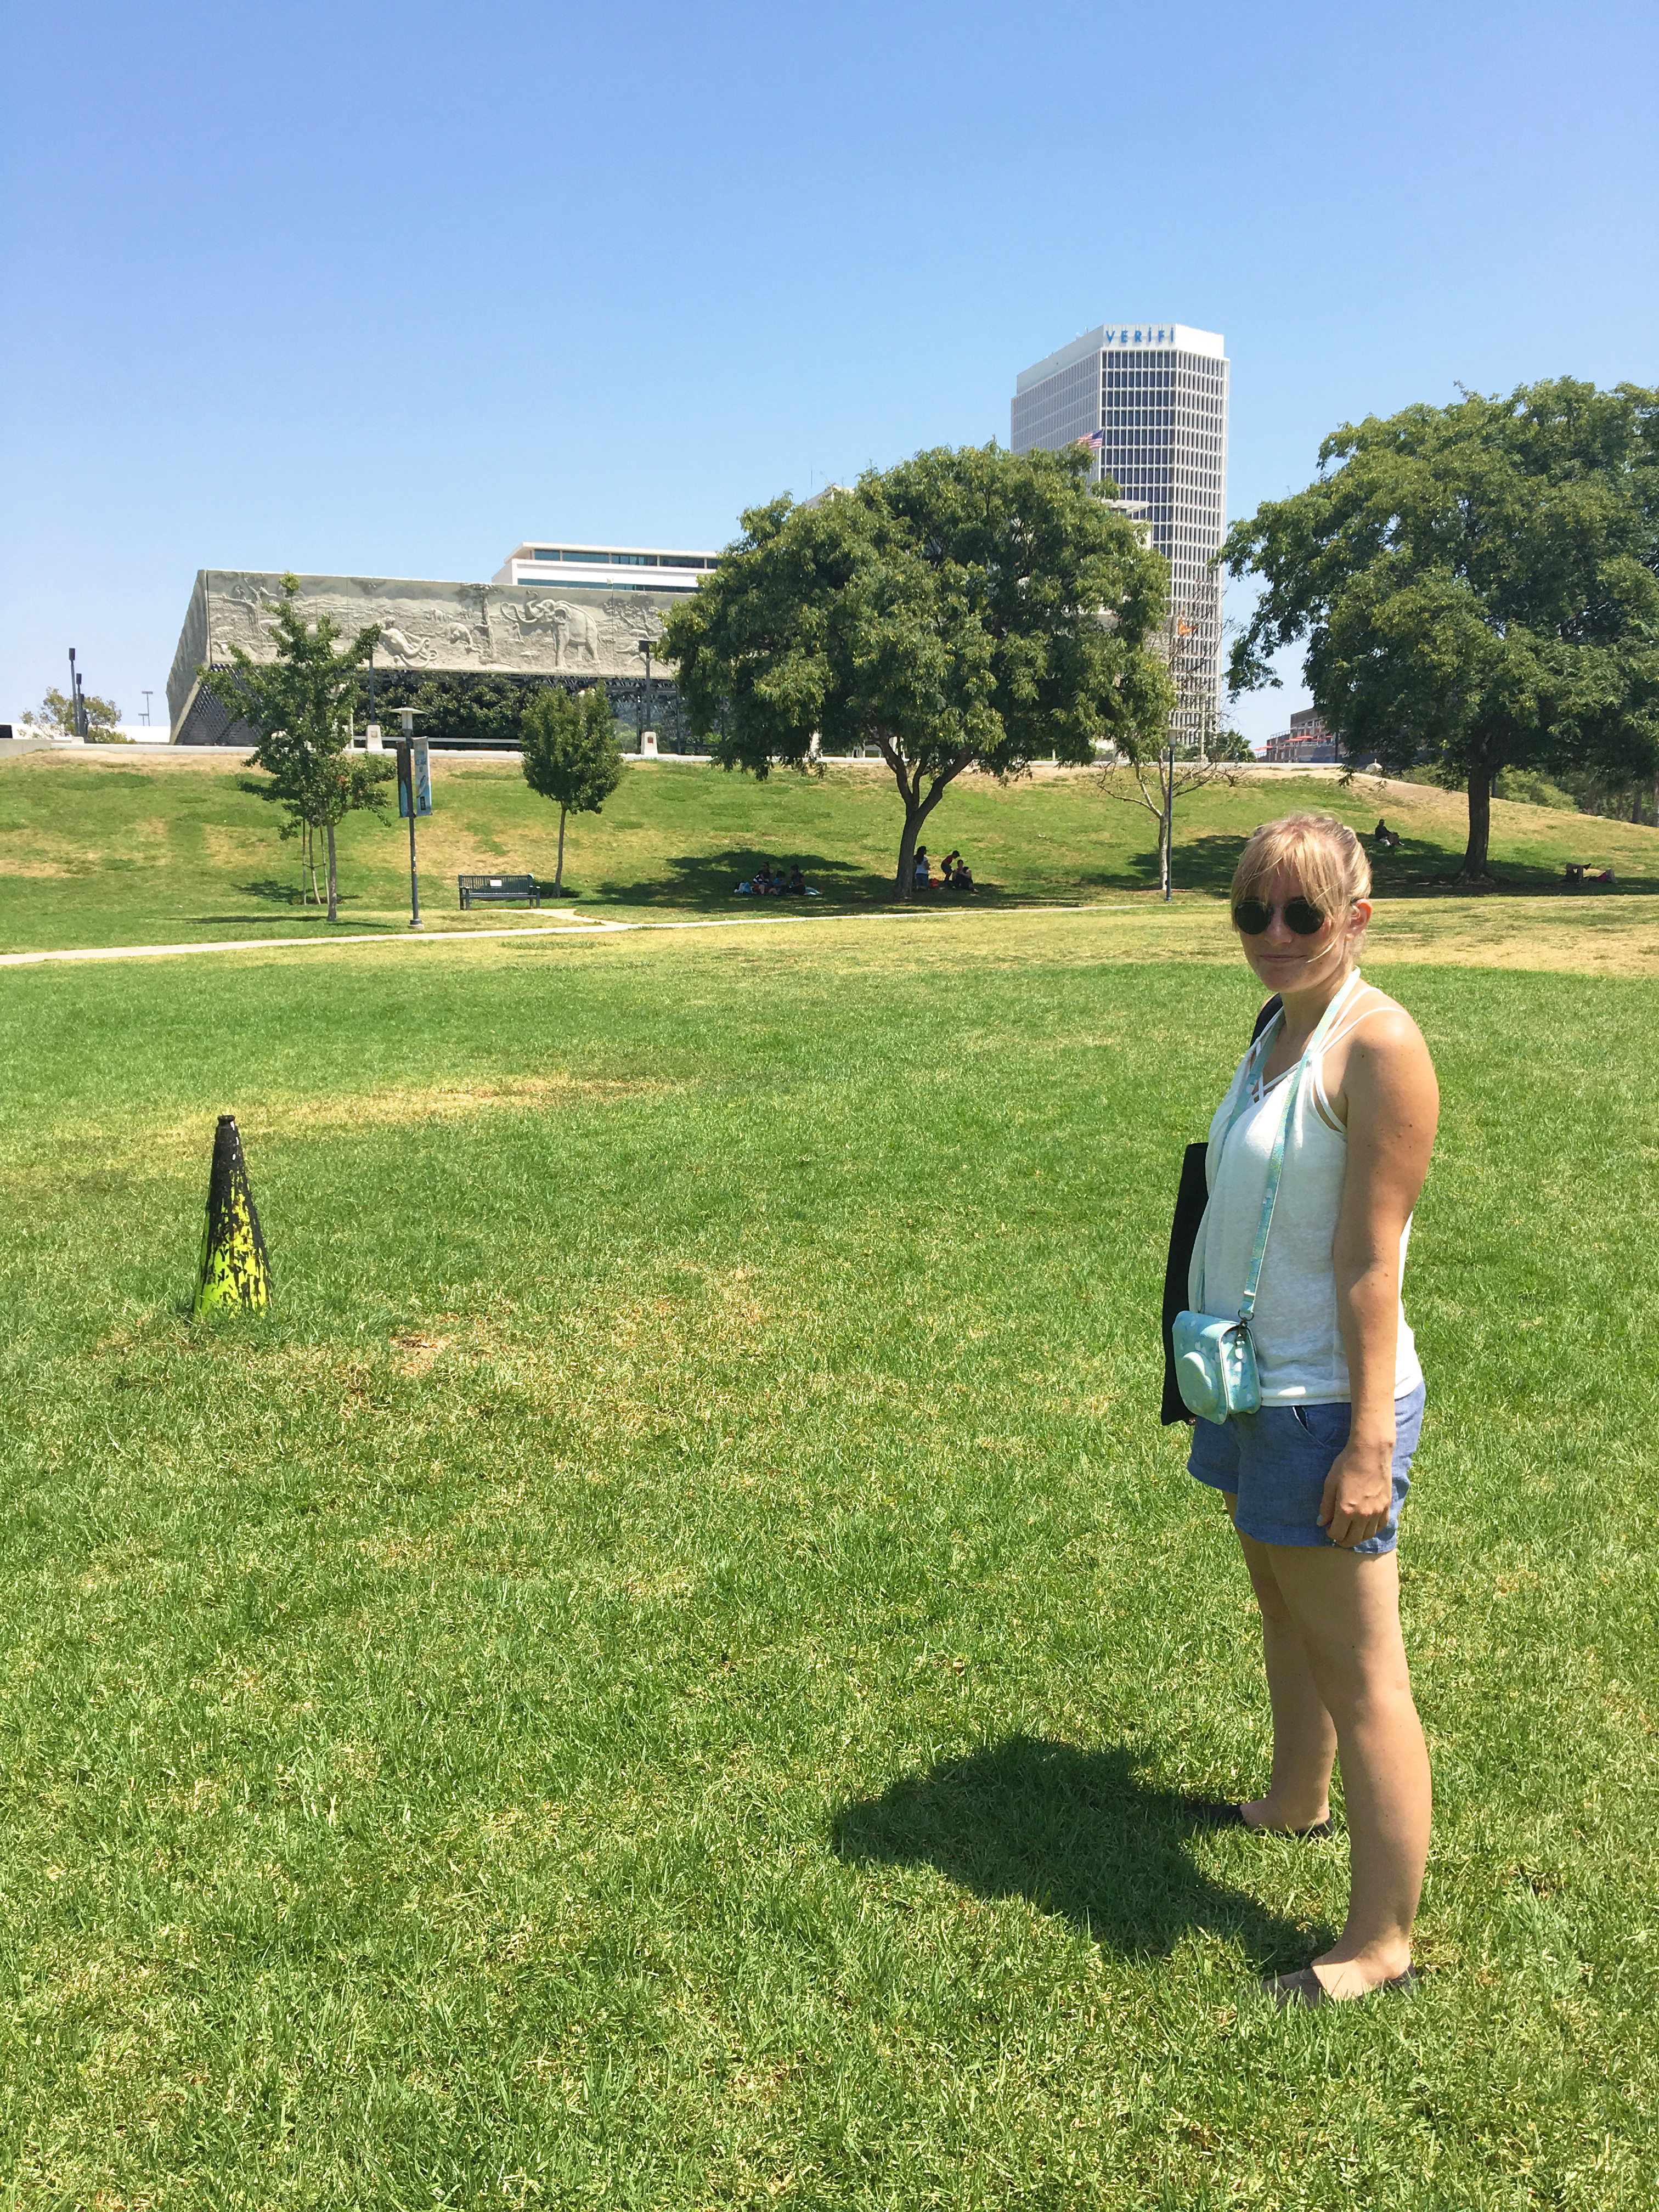 andria in front of la brea tar pits museum